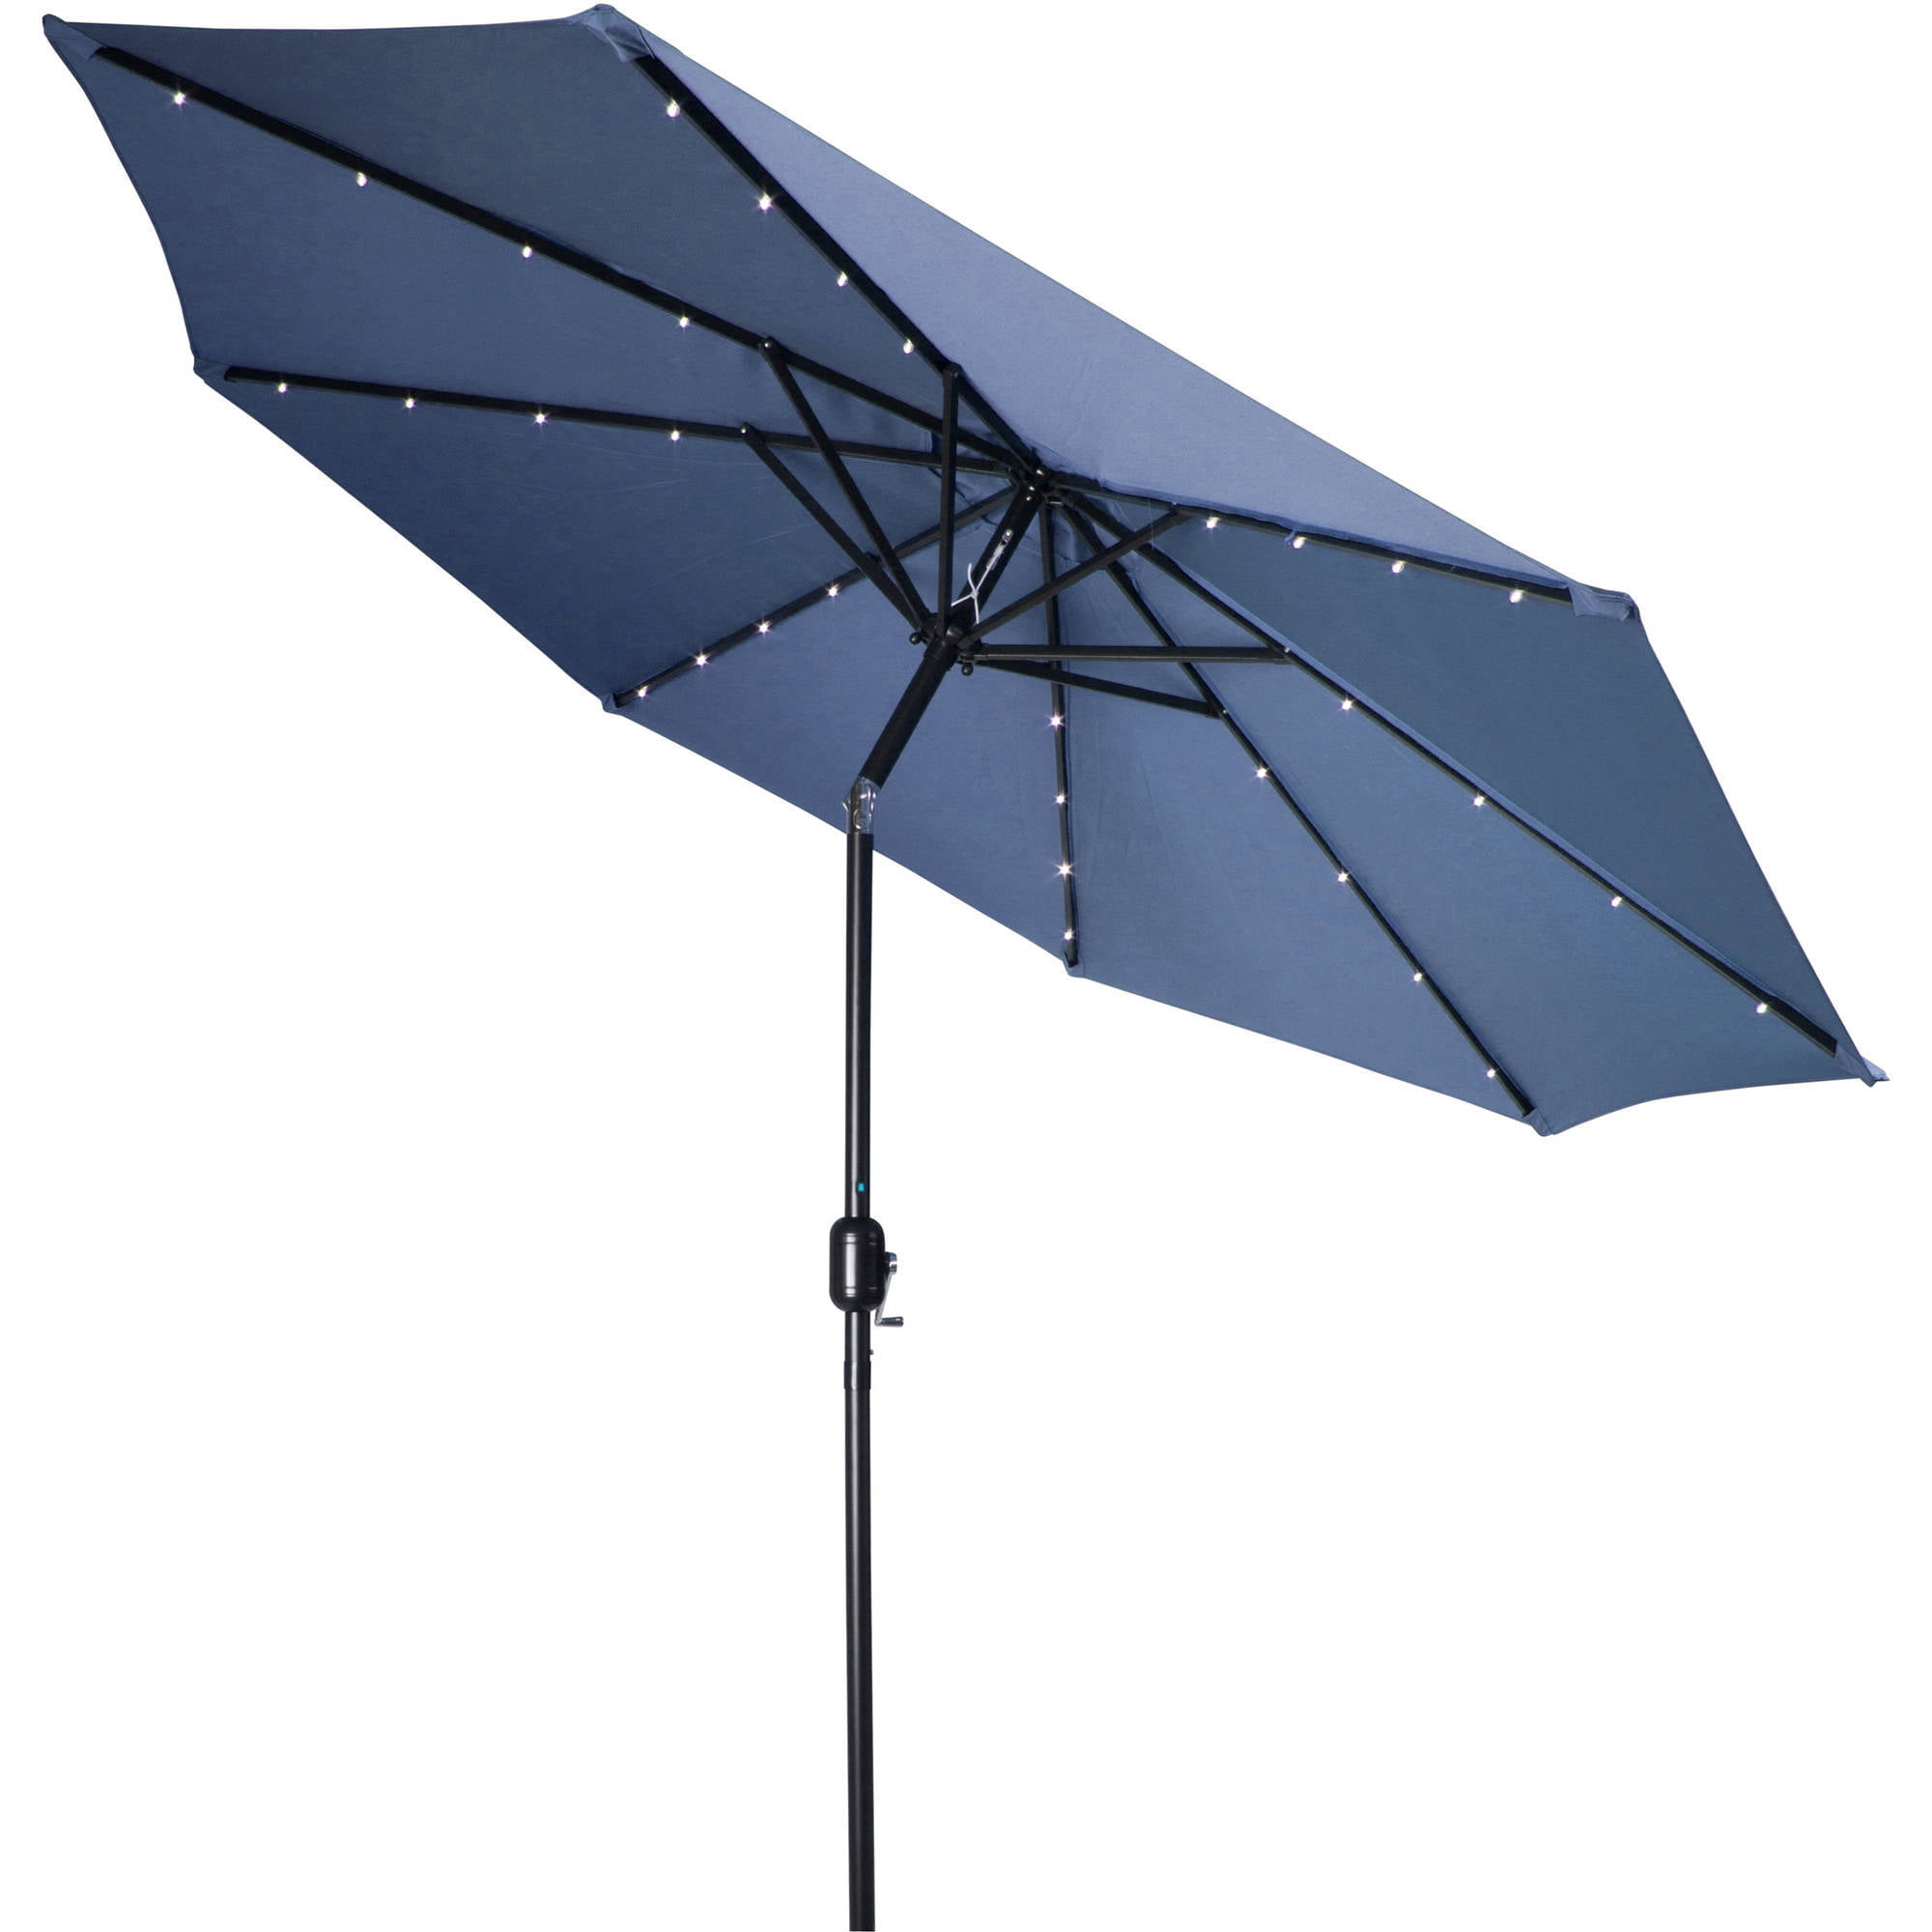 Deluxe Solar Powered LED Lighted Patio Umbrella 9' By Trademark Innovations (Blue) by Trademark Innovations